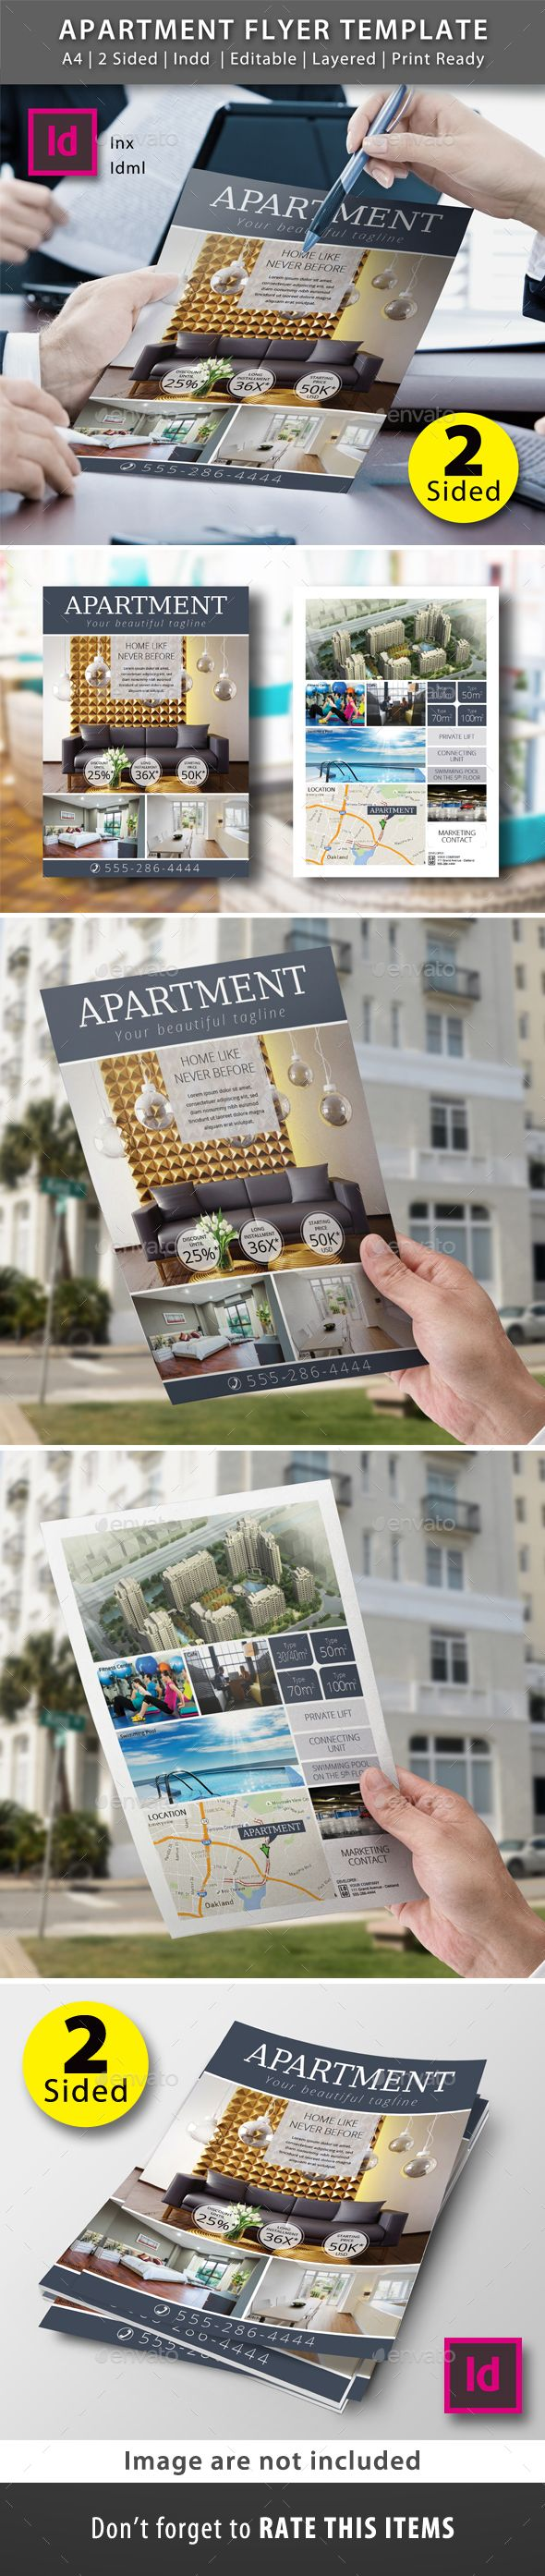 sided property flyer template flyers flyer template and templates apartment flyer template commerce flyers